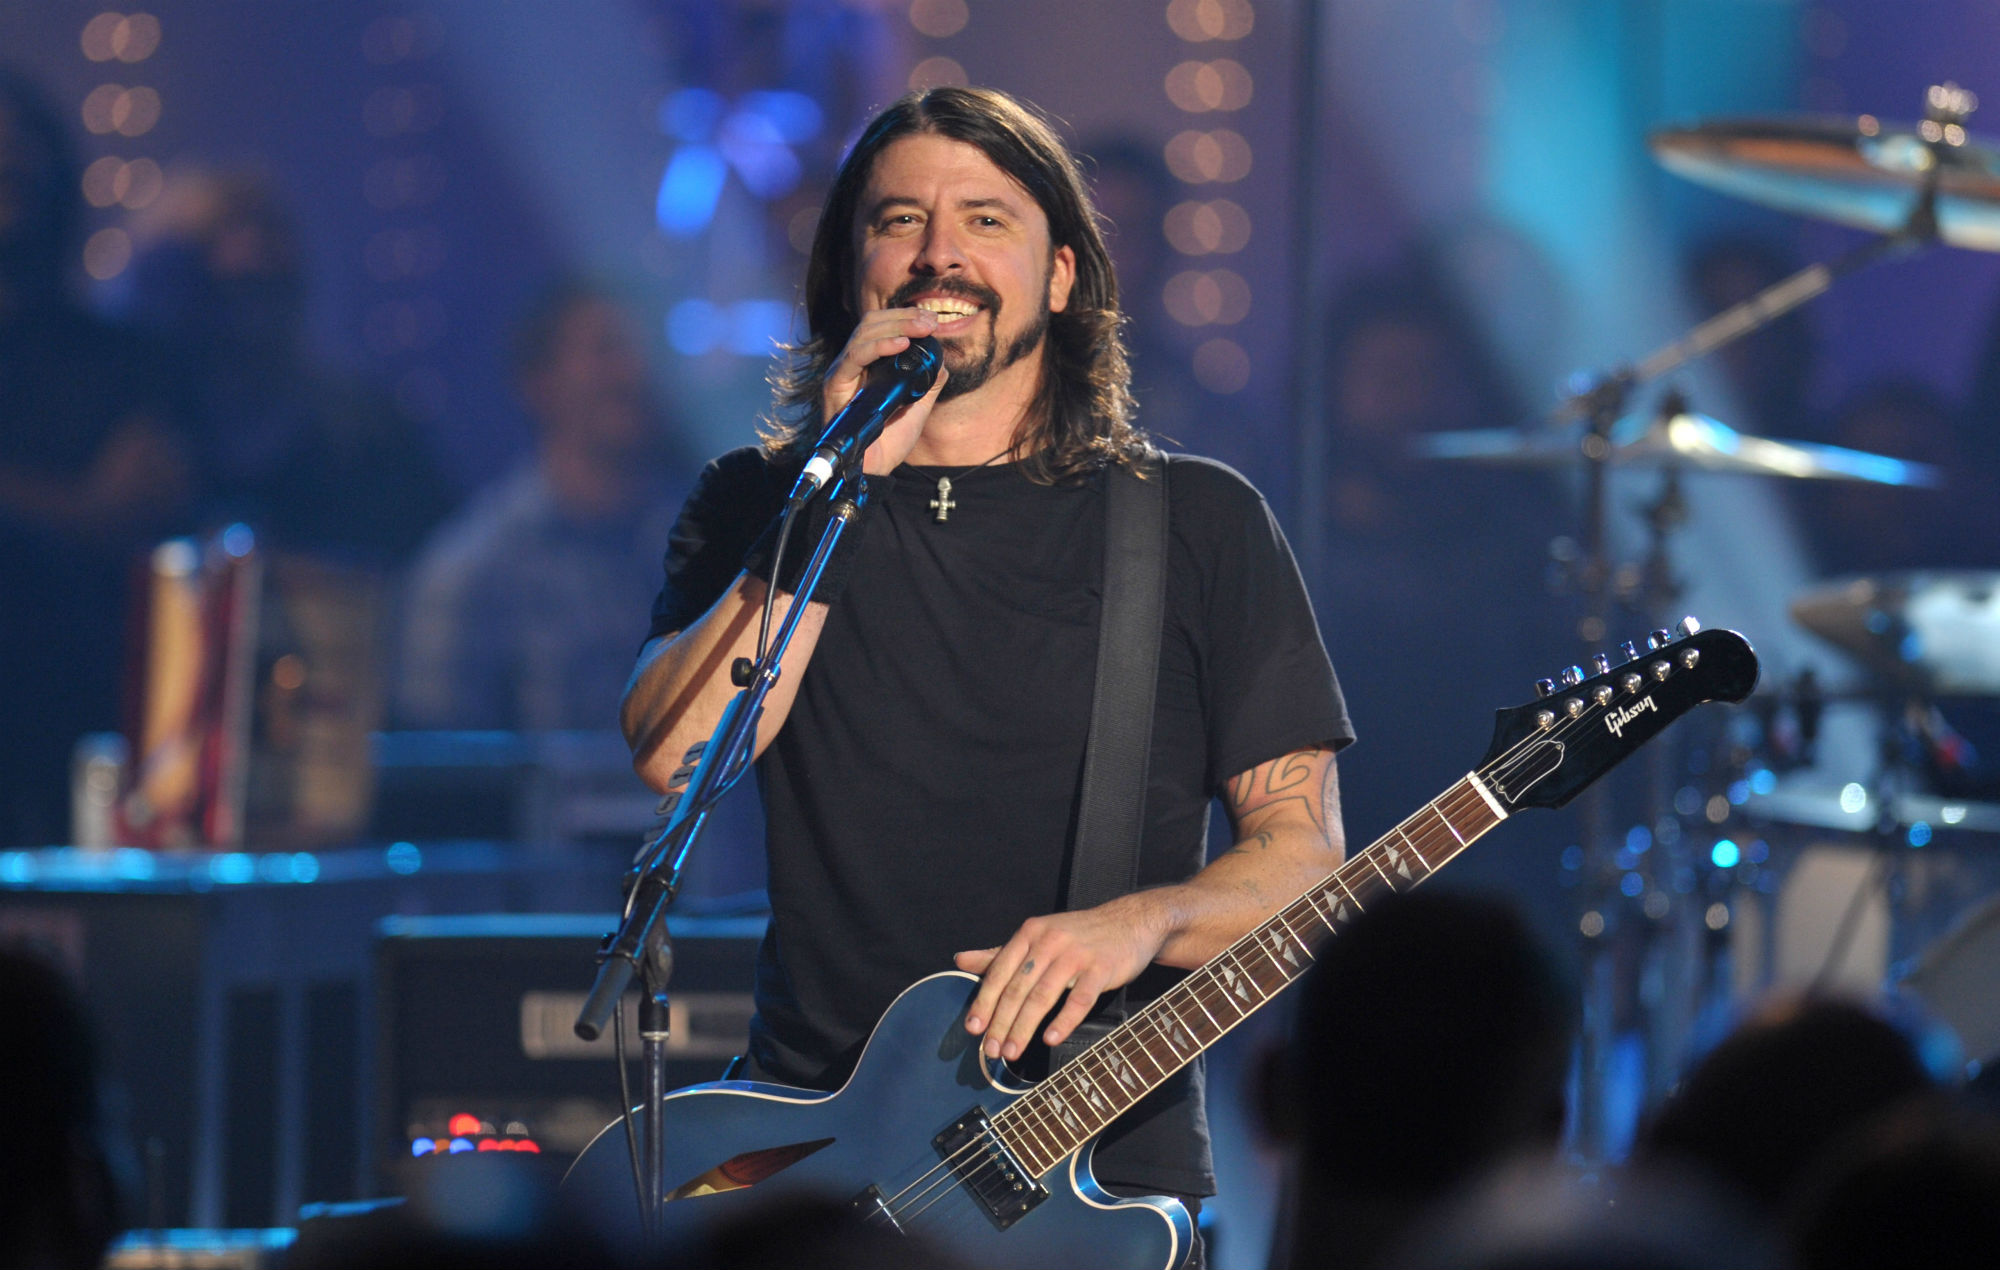 Dave Grohl Releases Play A New 23 Minute Solo Recording